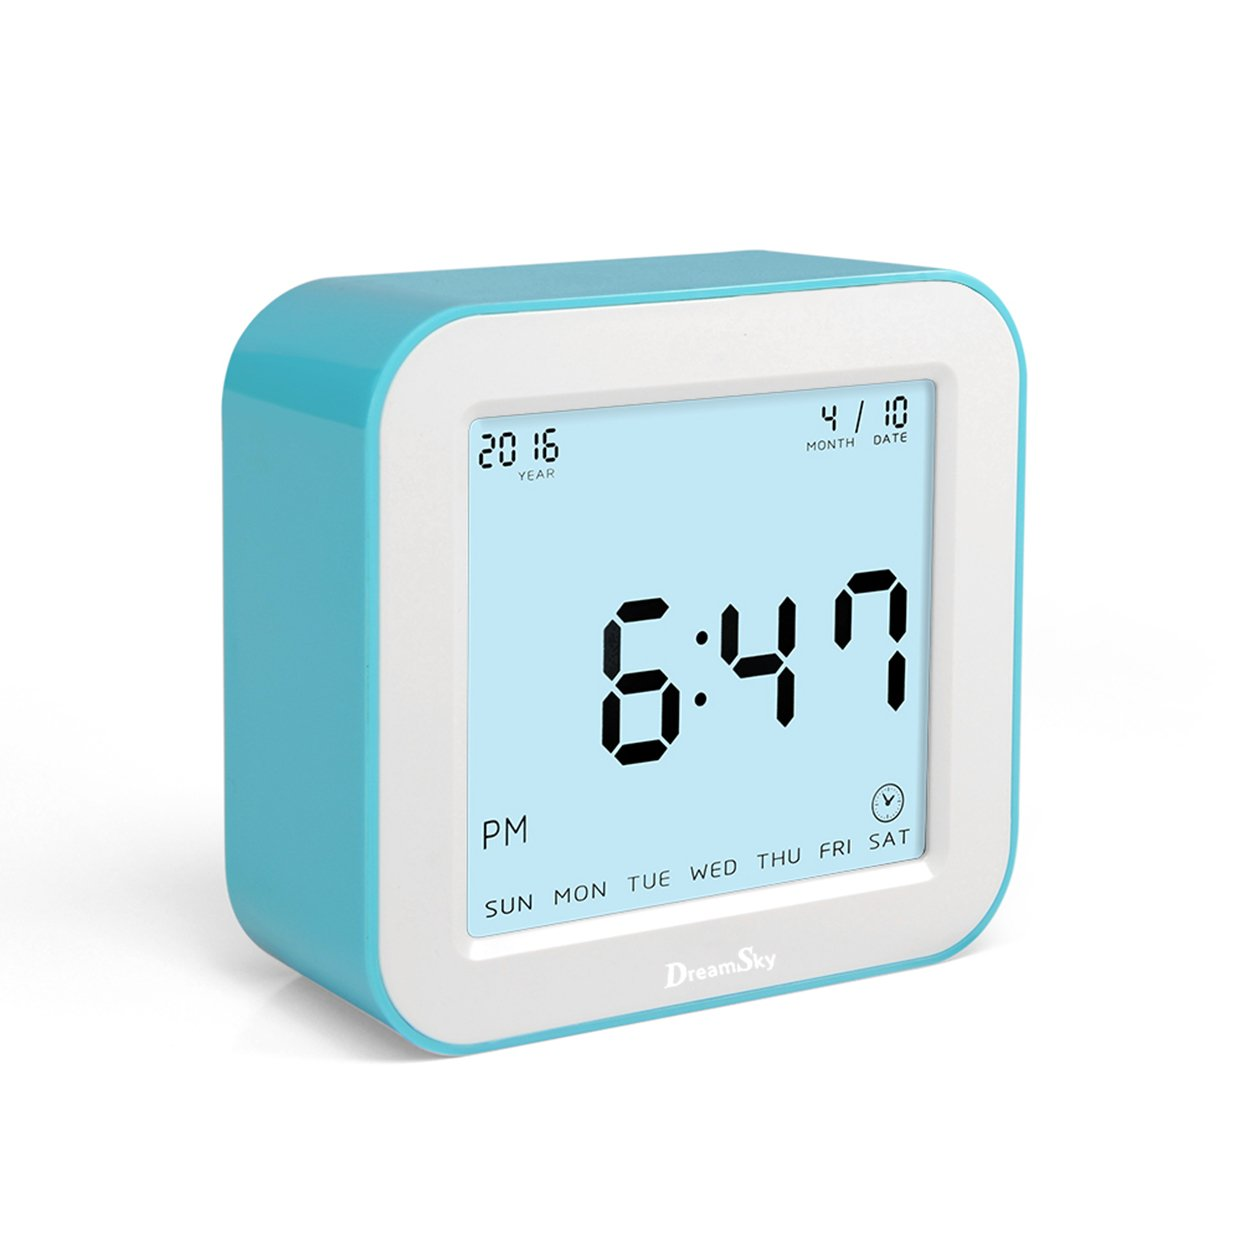 DreamSky Digital Alarm Clock With Timer, Time/Alarm/Timer/Temperature Display In 4 Angle, Light Activated Night Light -Battery Operated Travel Alarm Clock,Simple To Set Clocks, Blue